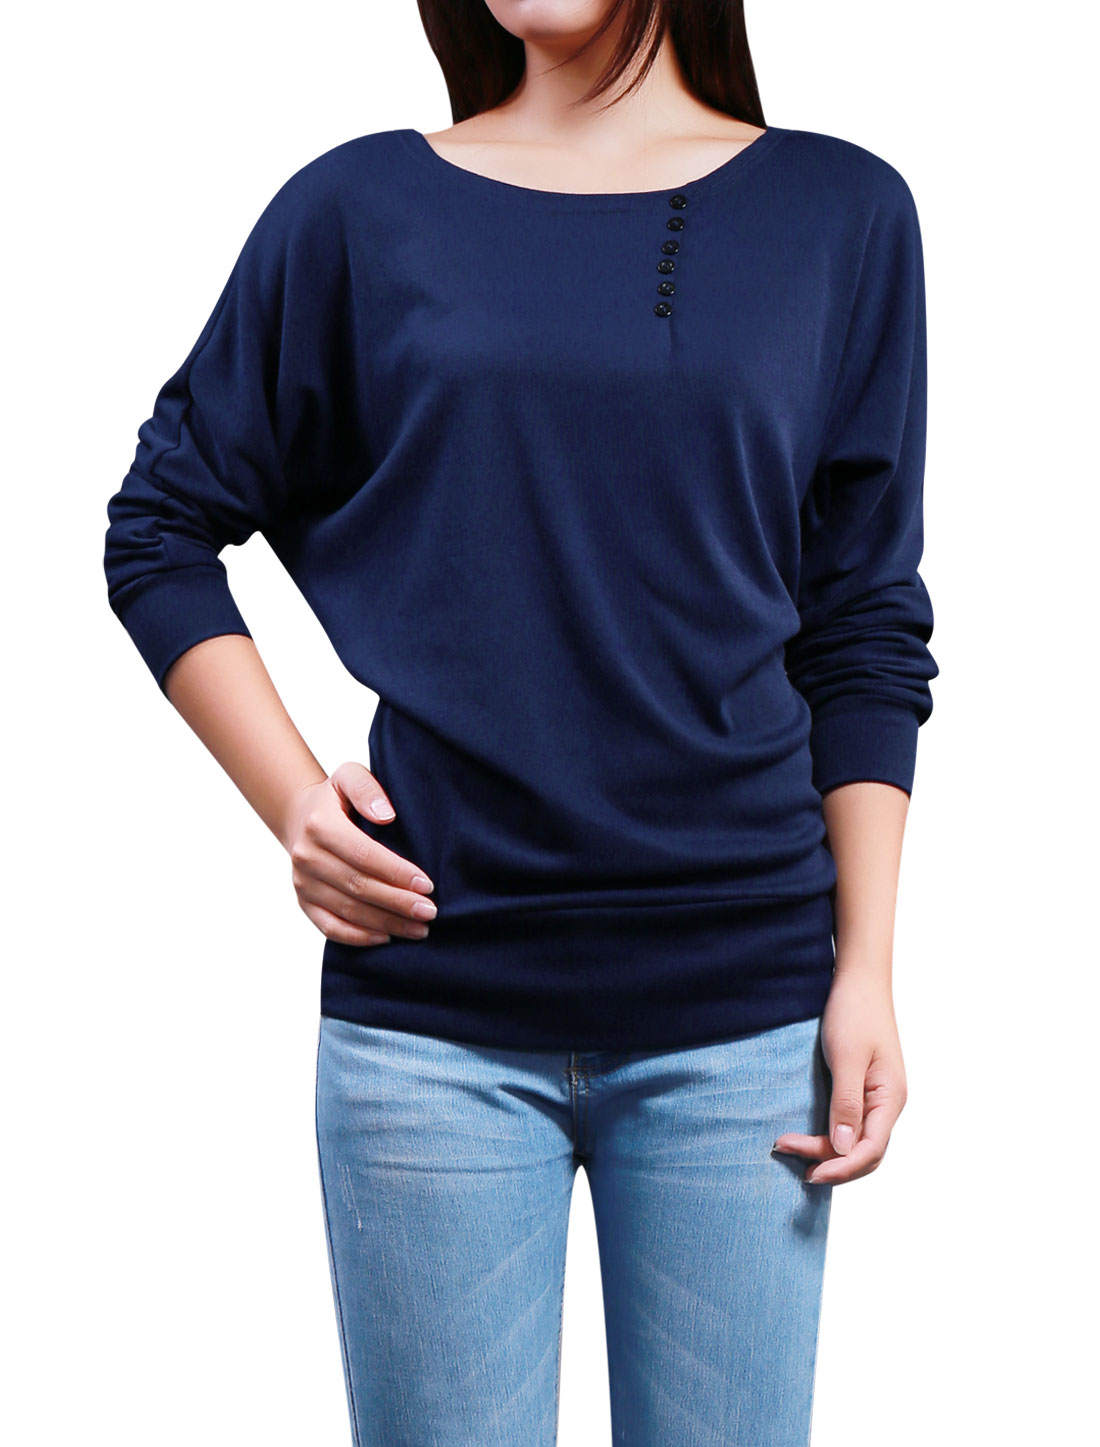 Lady Boat Neck Button Docor Front Long Dolman Sleeve Top Dark Blue XL